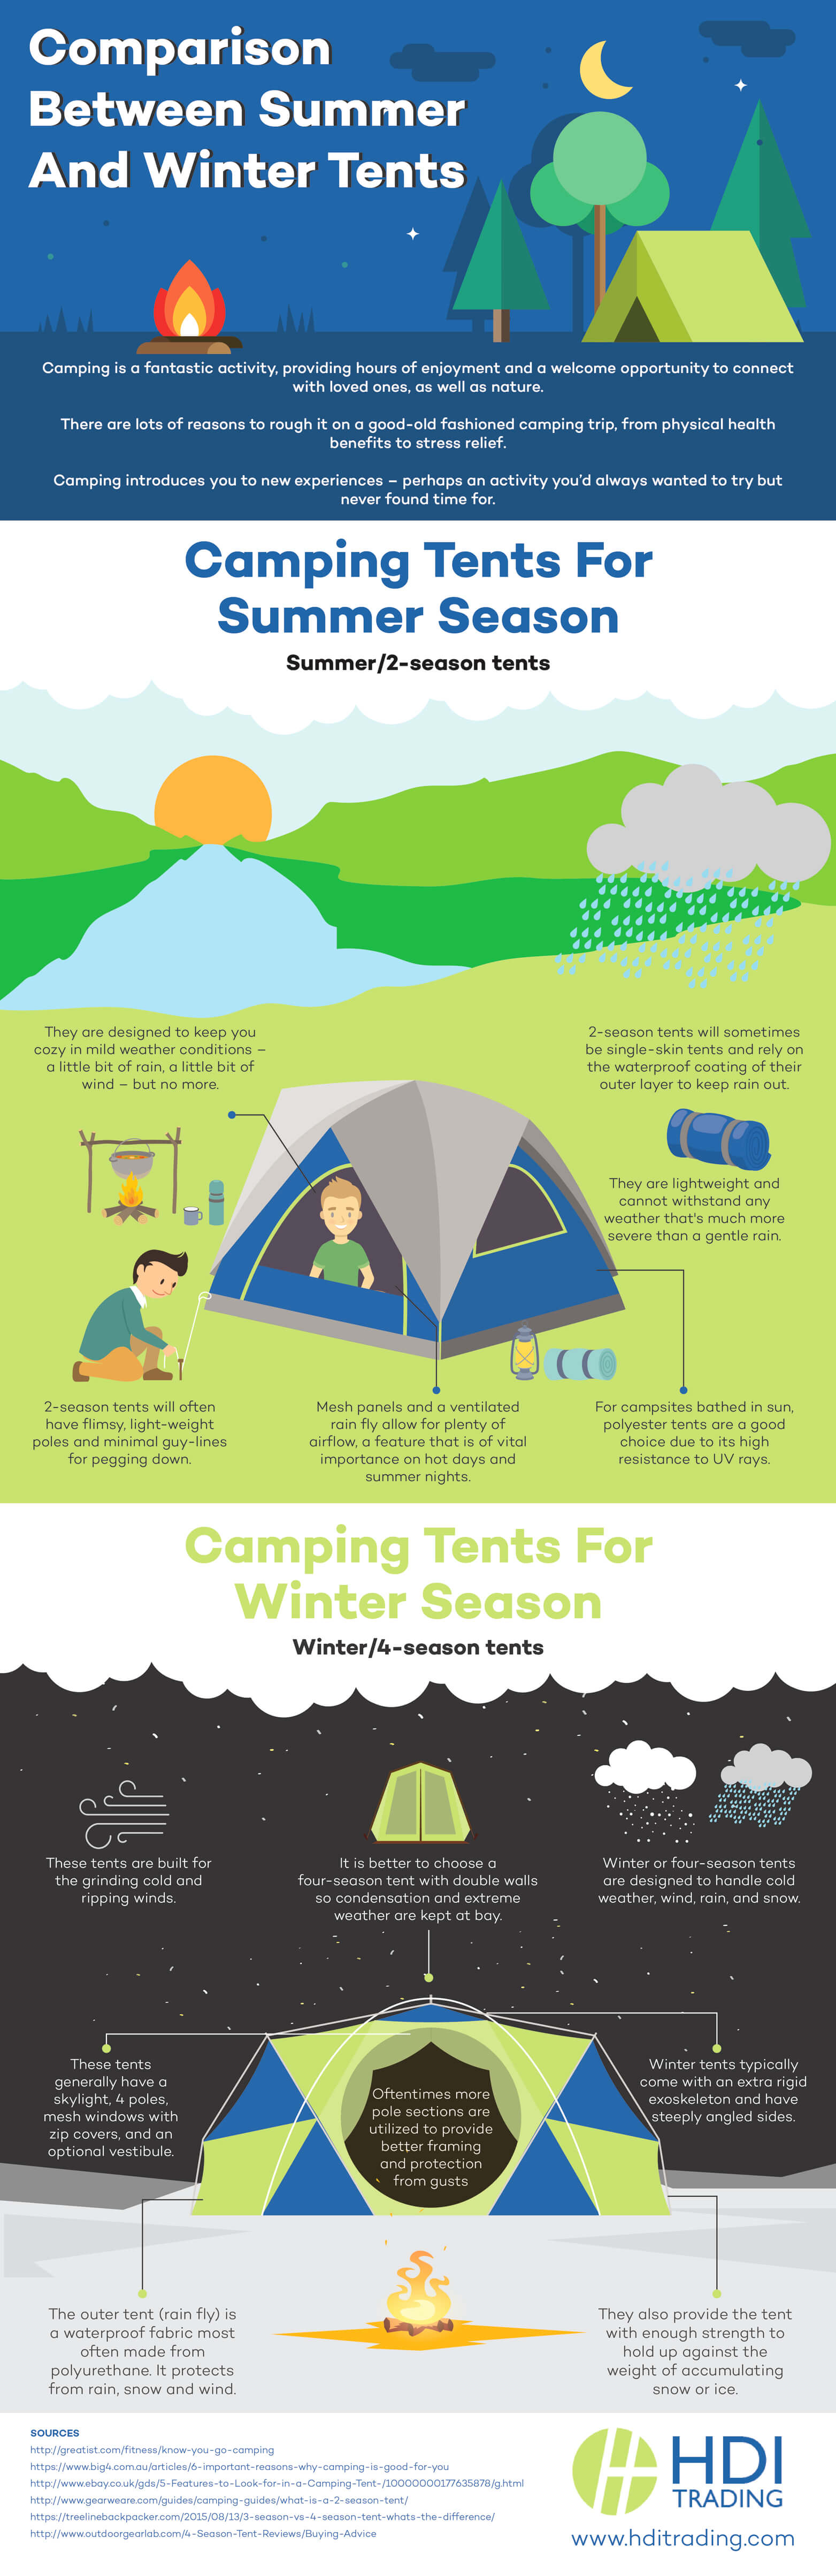 Comparison Between Summer and Winter Tents